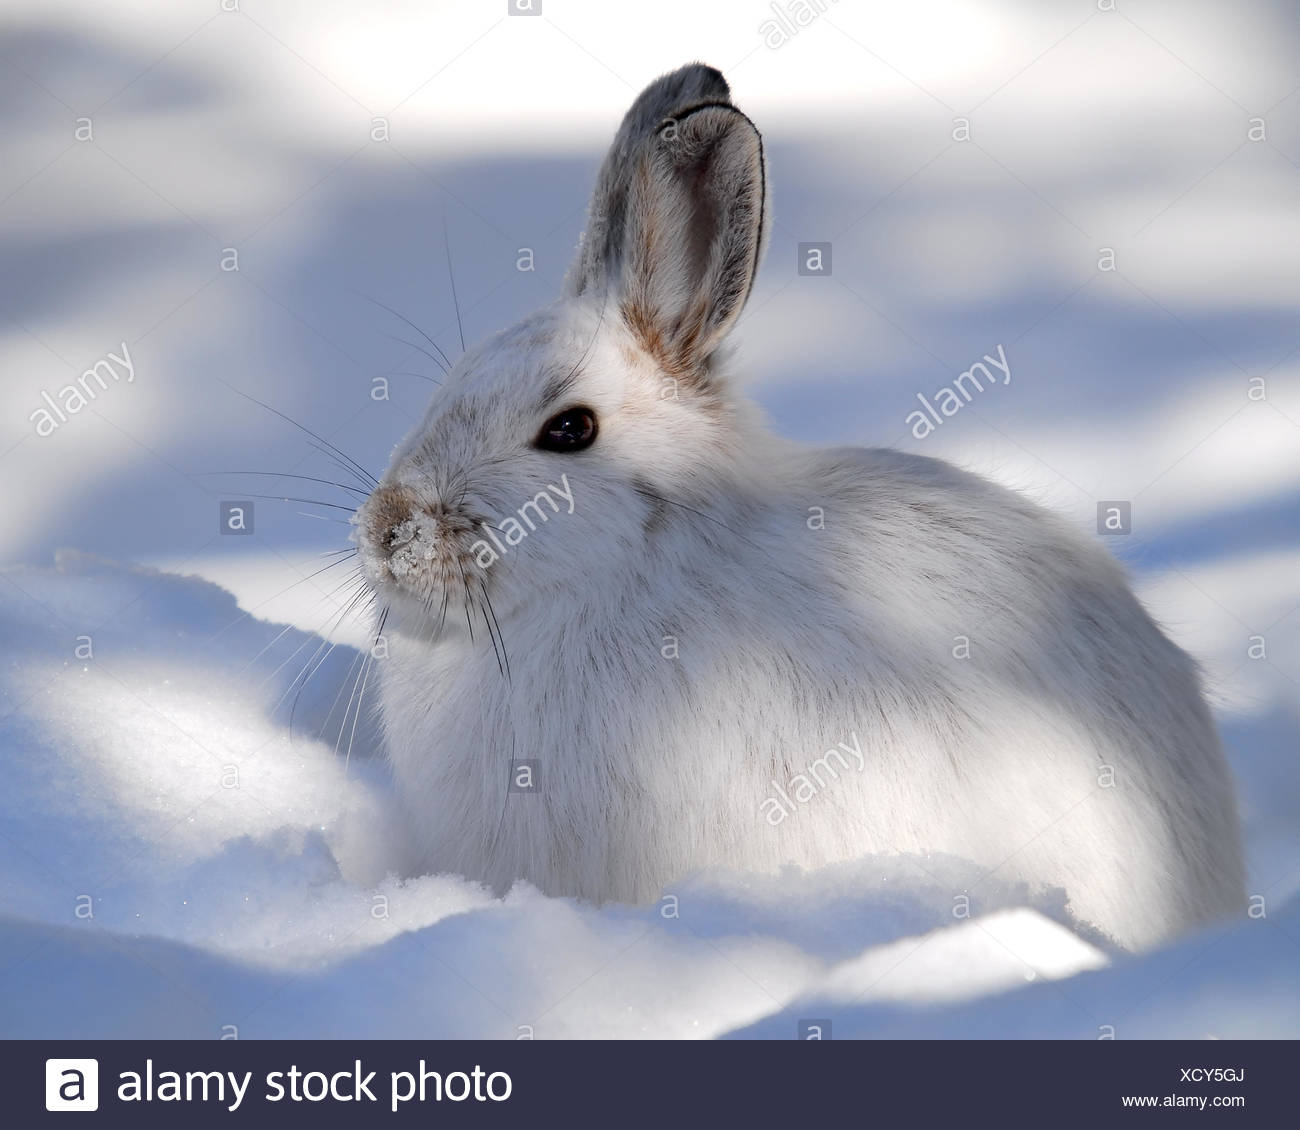 hare fields bunny bunnies fluffy park winter mammal wild